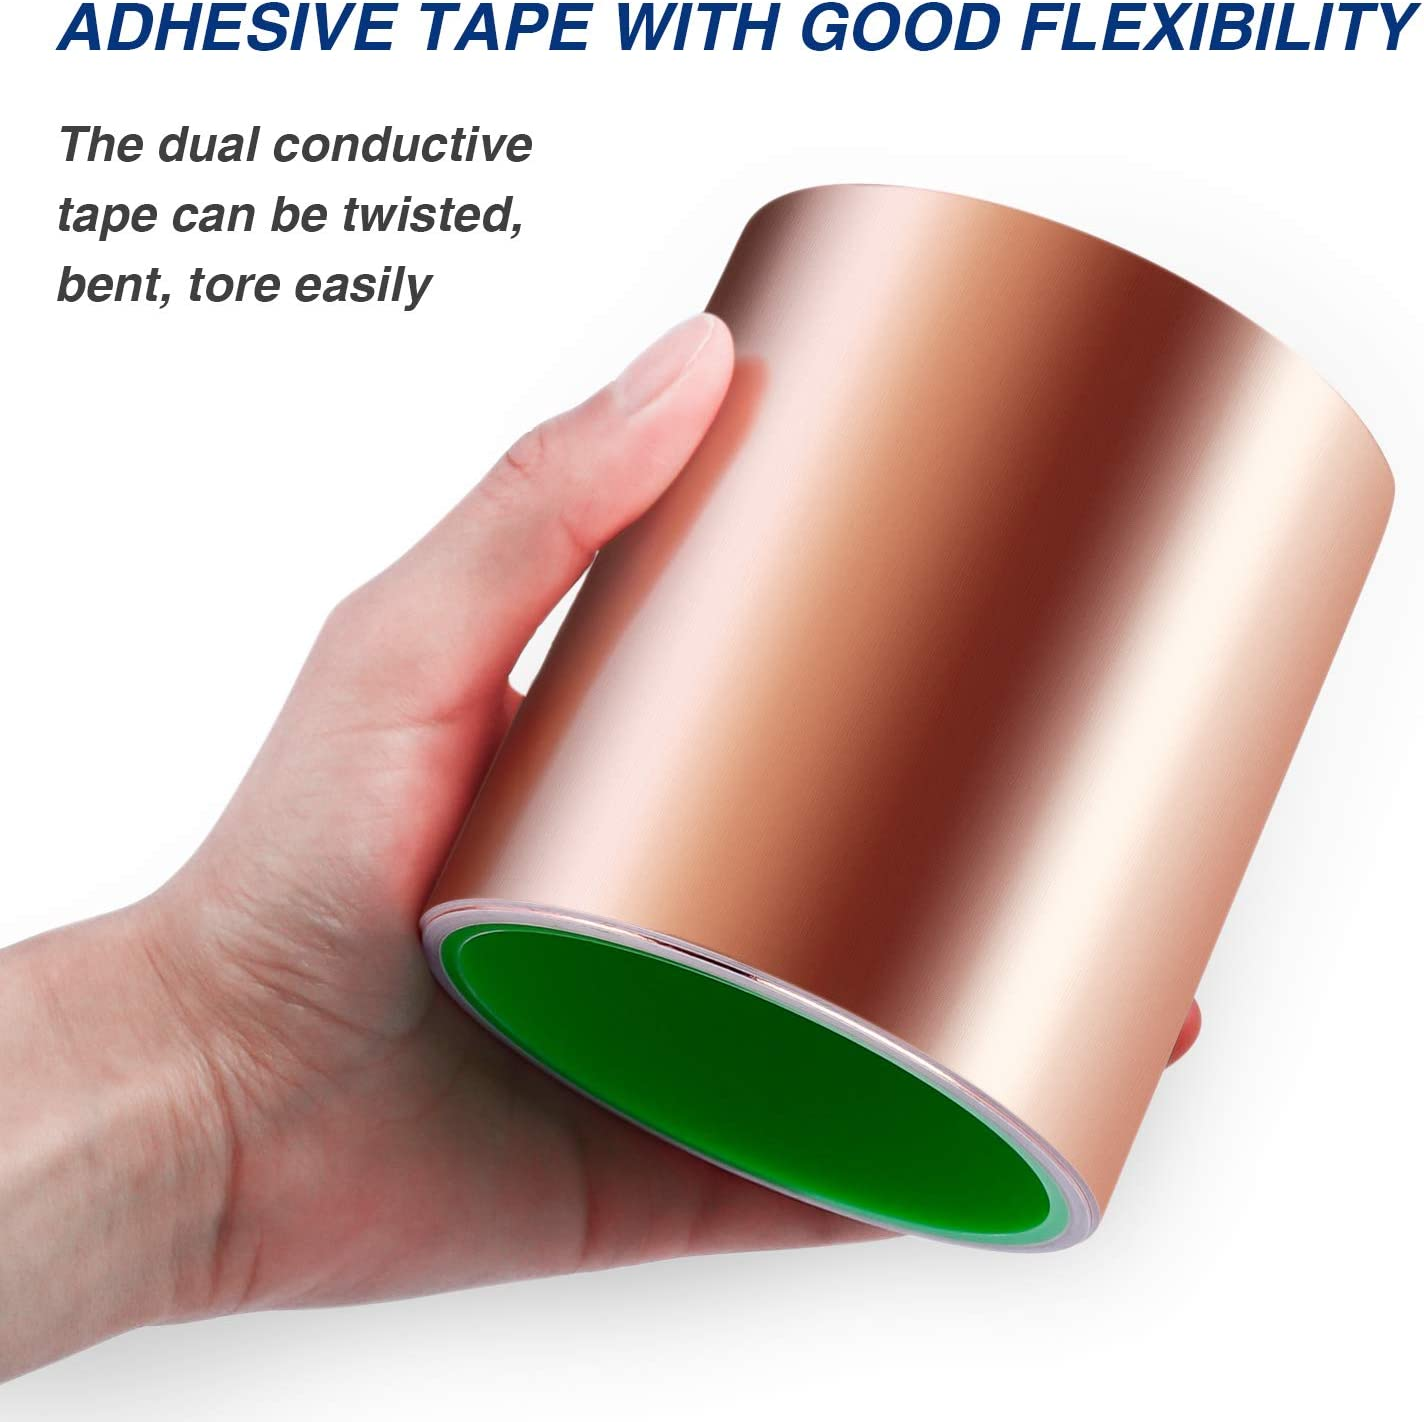 Electrical Repairs Grounding LOVIMAG Copper Foil Tape with Conductive Adhesive for Guitar and EMI Shielding 4inch X 16 FT Slug Repellent Crafts